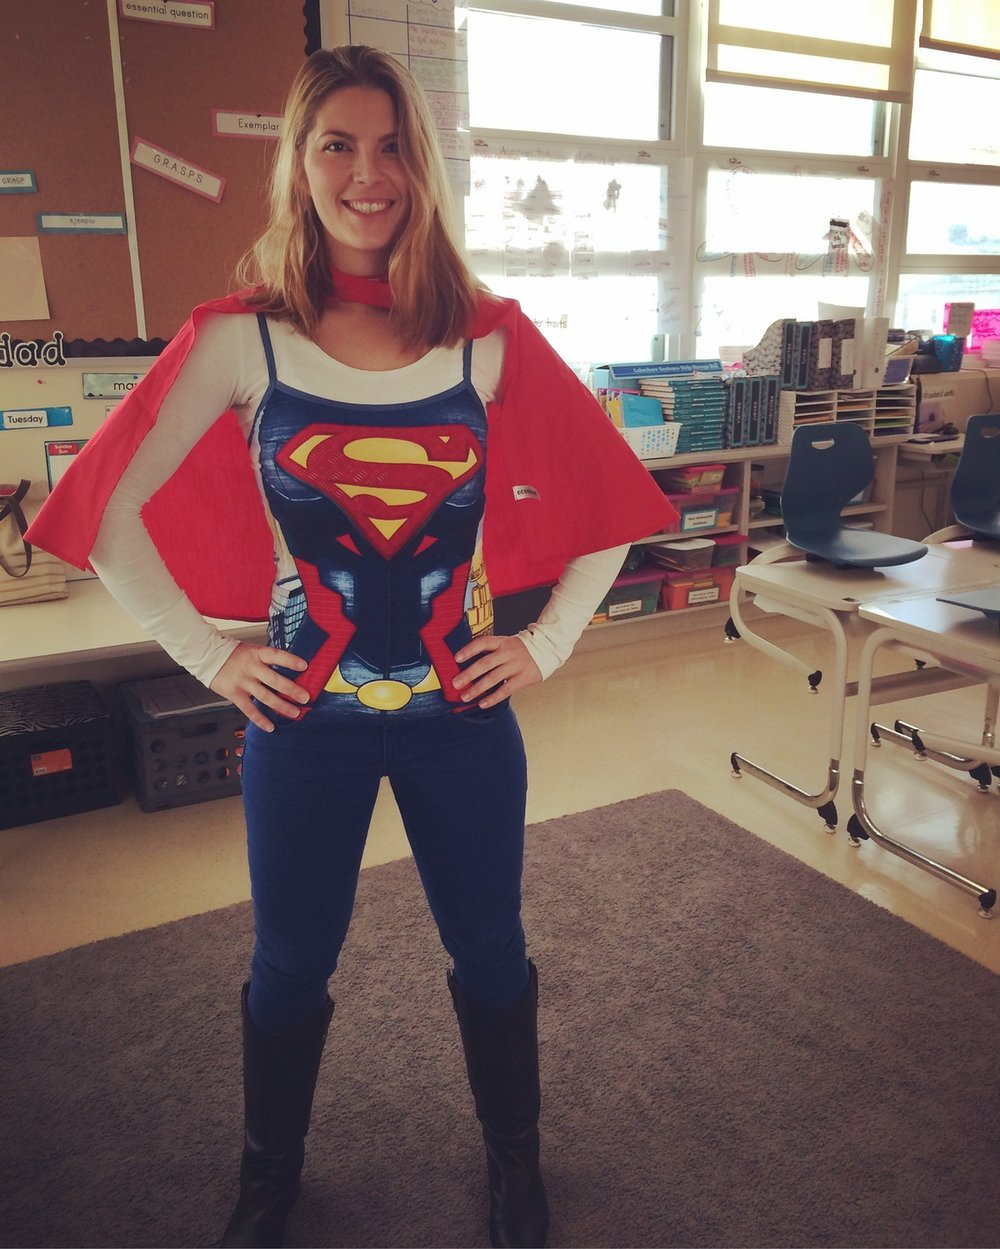 Cataneo dressed up as Supergirl at Powell (photo: Rachel Carson)